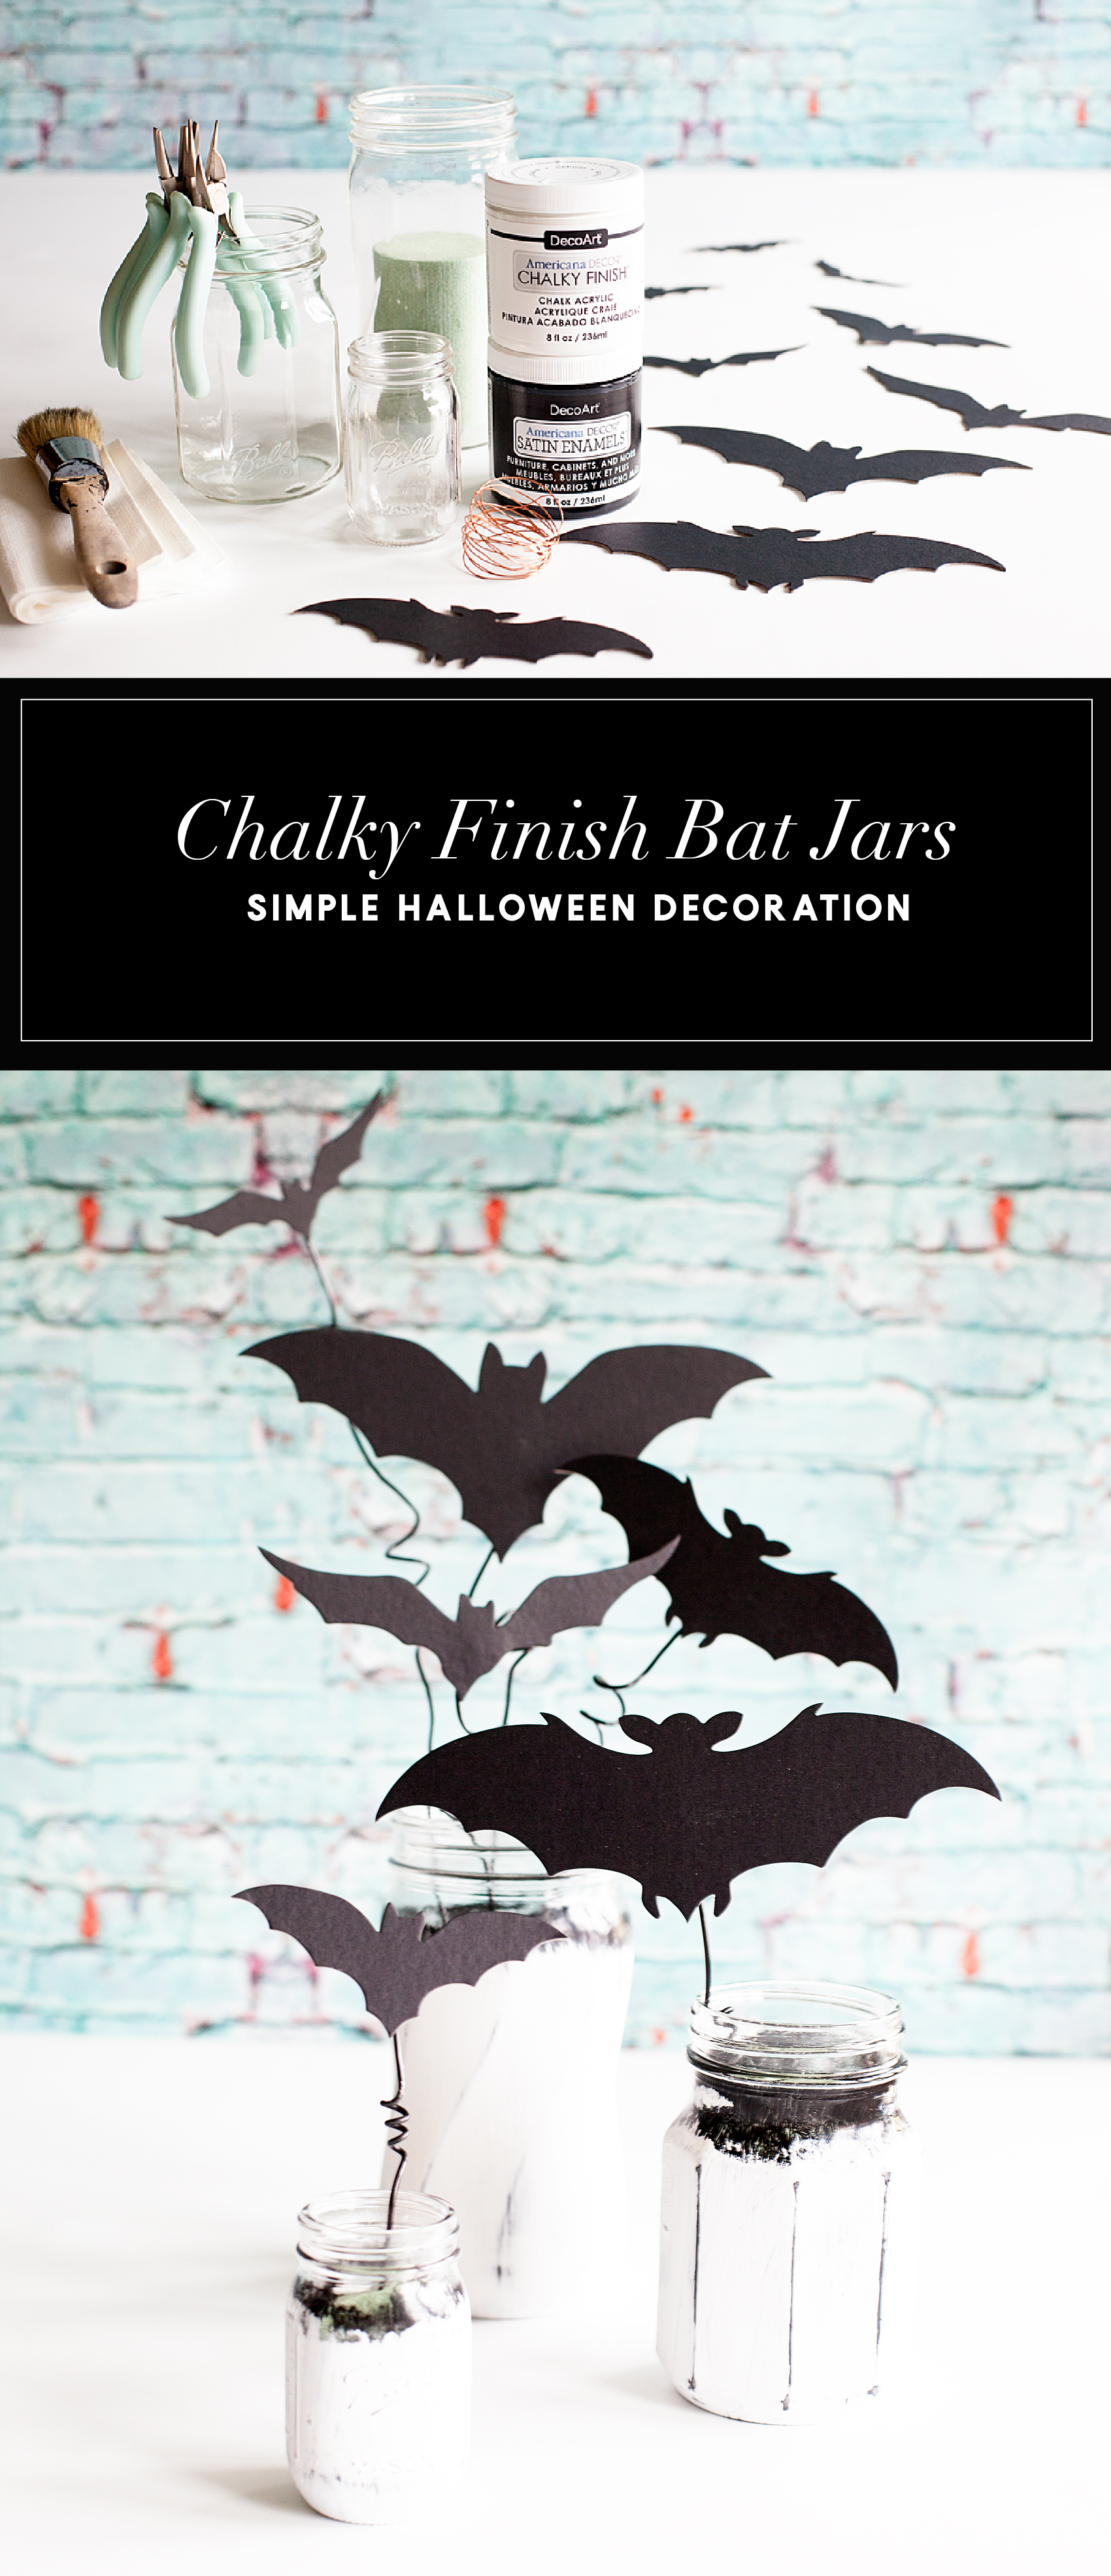 Chalky Finish Bats in a Jar • Have fun creating spooky Halloween decor with these Americana Decor Chalky Finish Ball Jars filled with creepy bats. Decorate your mantle or use them as a table centerpiece. Either way, they will add some stylish fun to your Halloween decoration game.